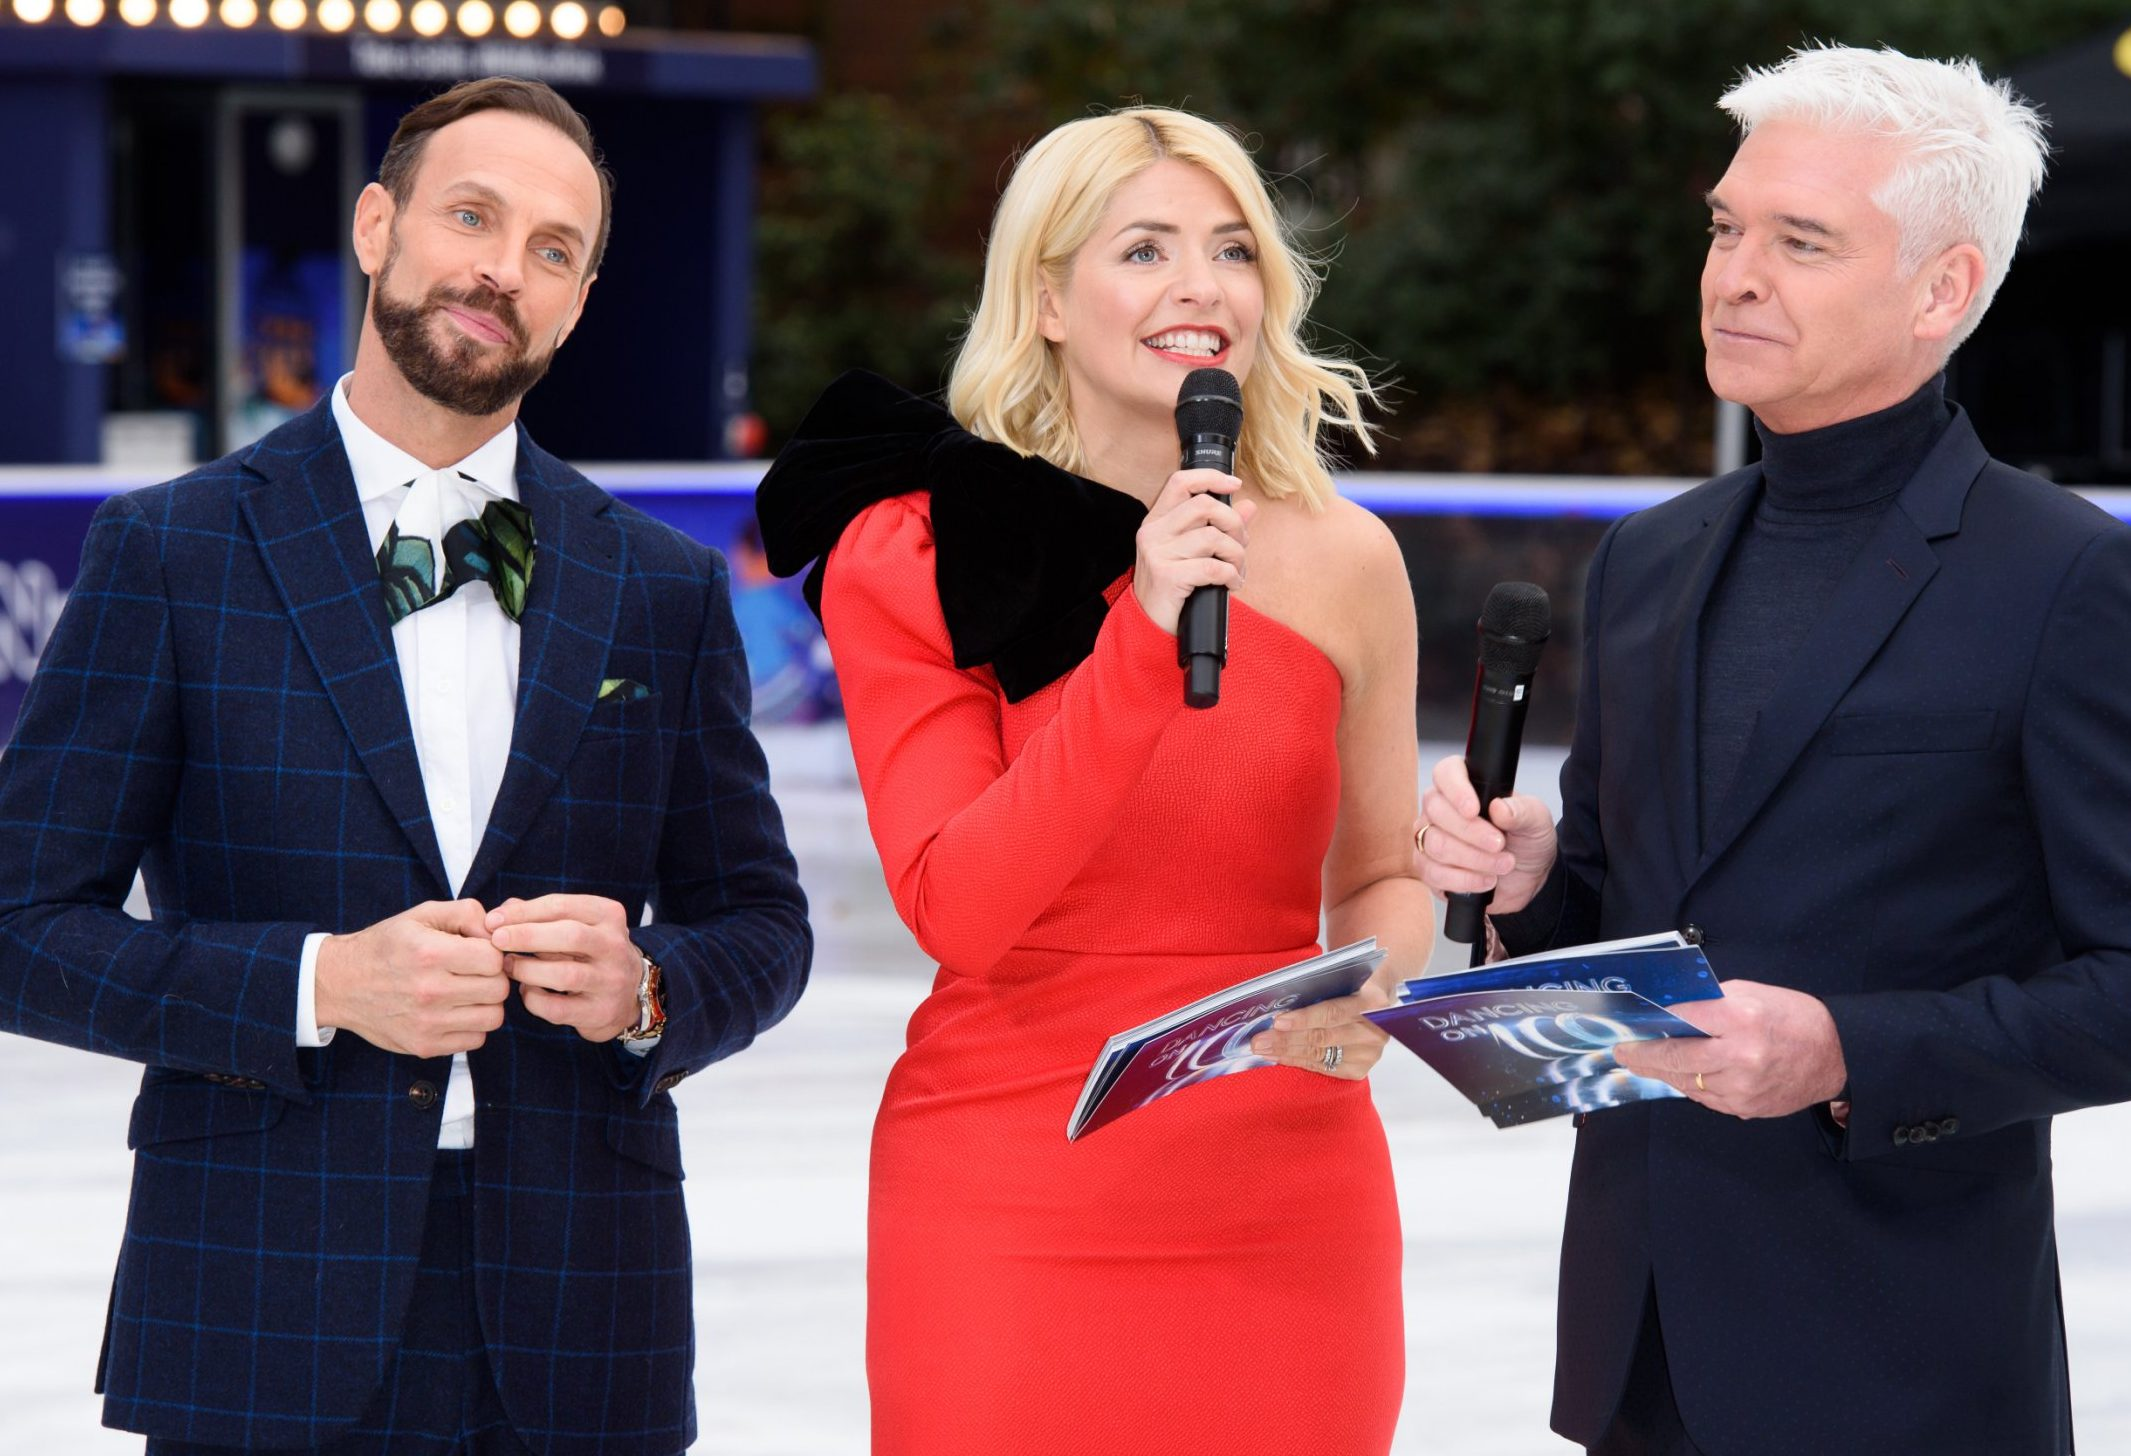 Dancing on Ice's Jason Gardiner wants same-sex couples to take part on the show